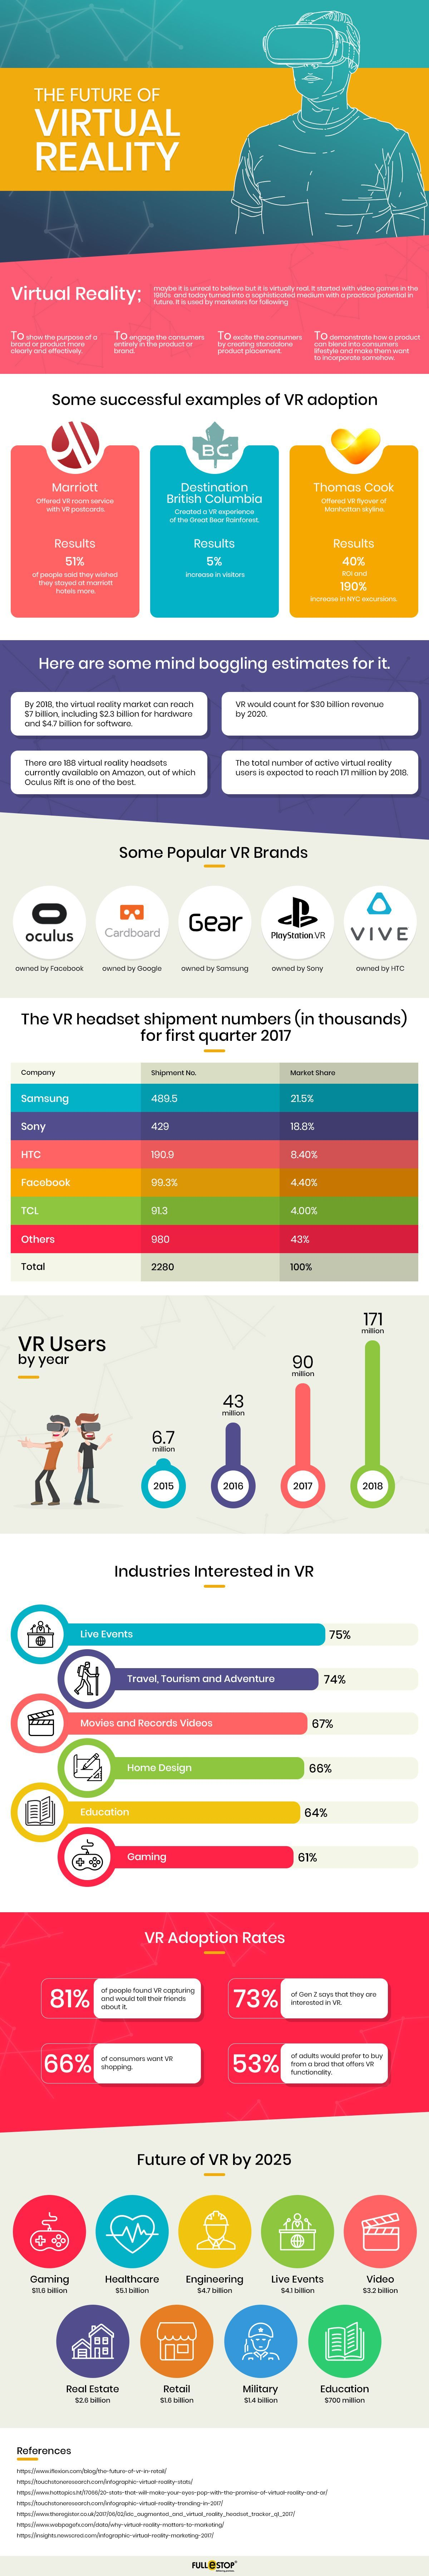 The Future Of Virtual Reality Infographic